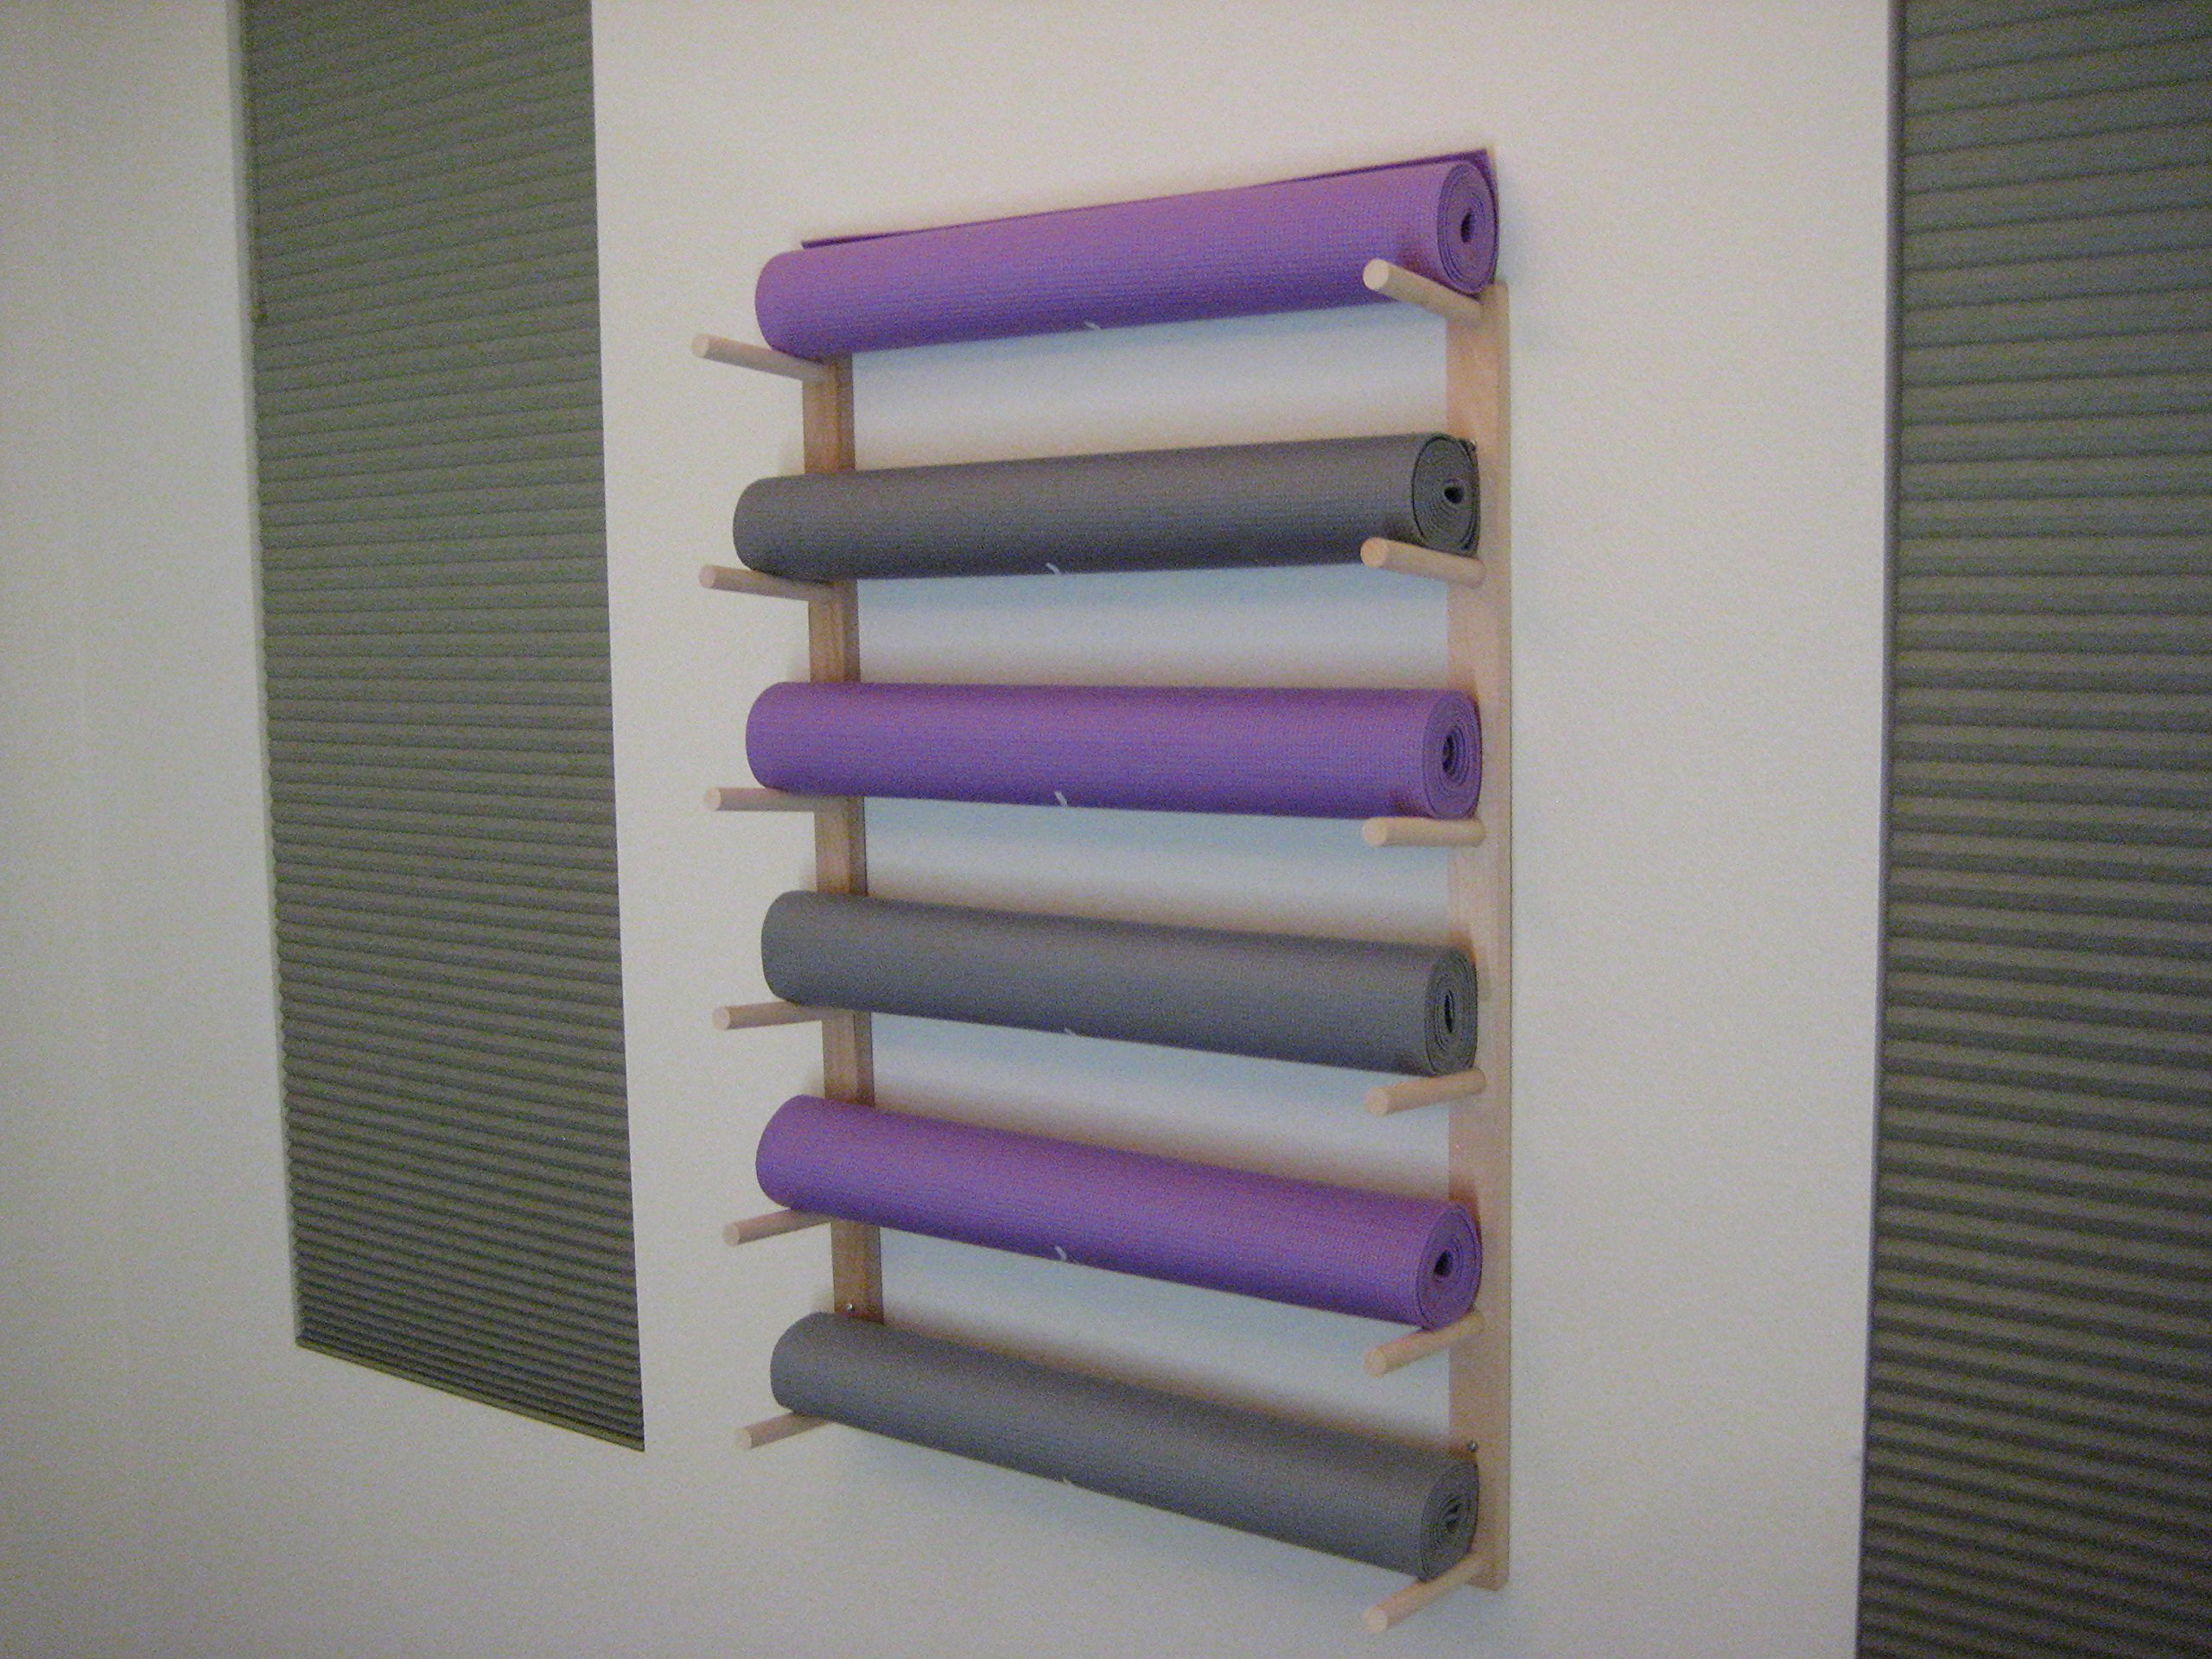 Foam Roller and Yoga Mat Storage Rack Wall Mount in Sustainable Hardwood (36'' 6-Space) (1 Set) by Fitness Storage (Image #3)